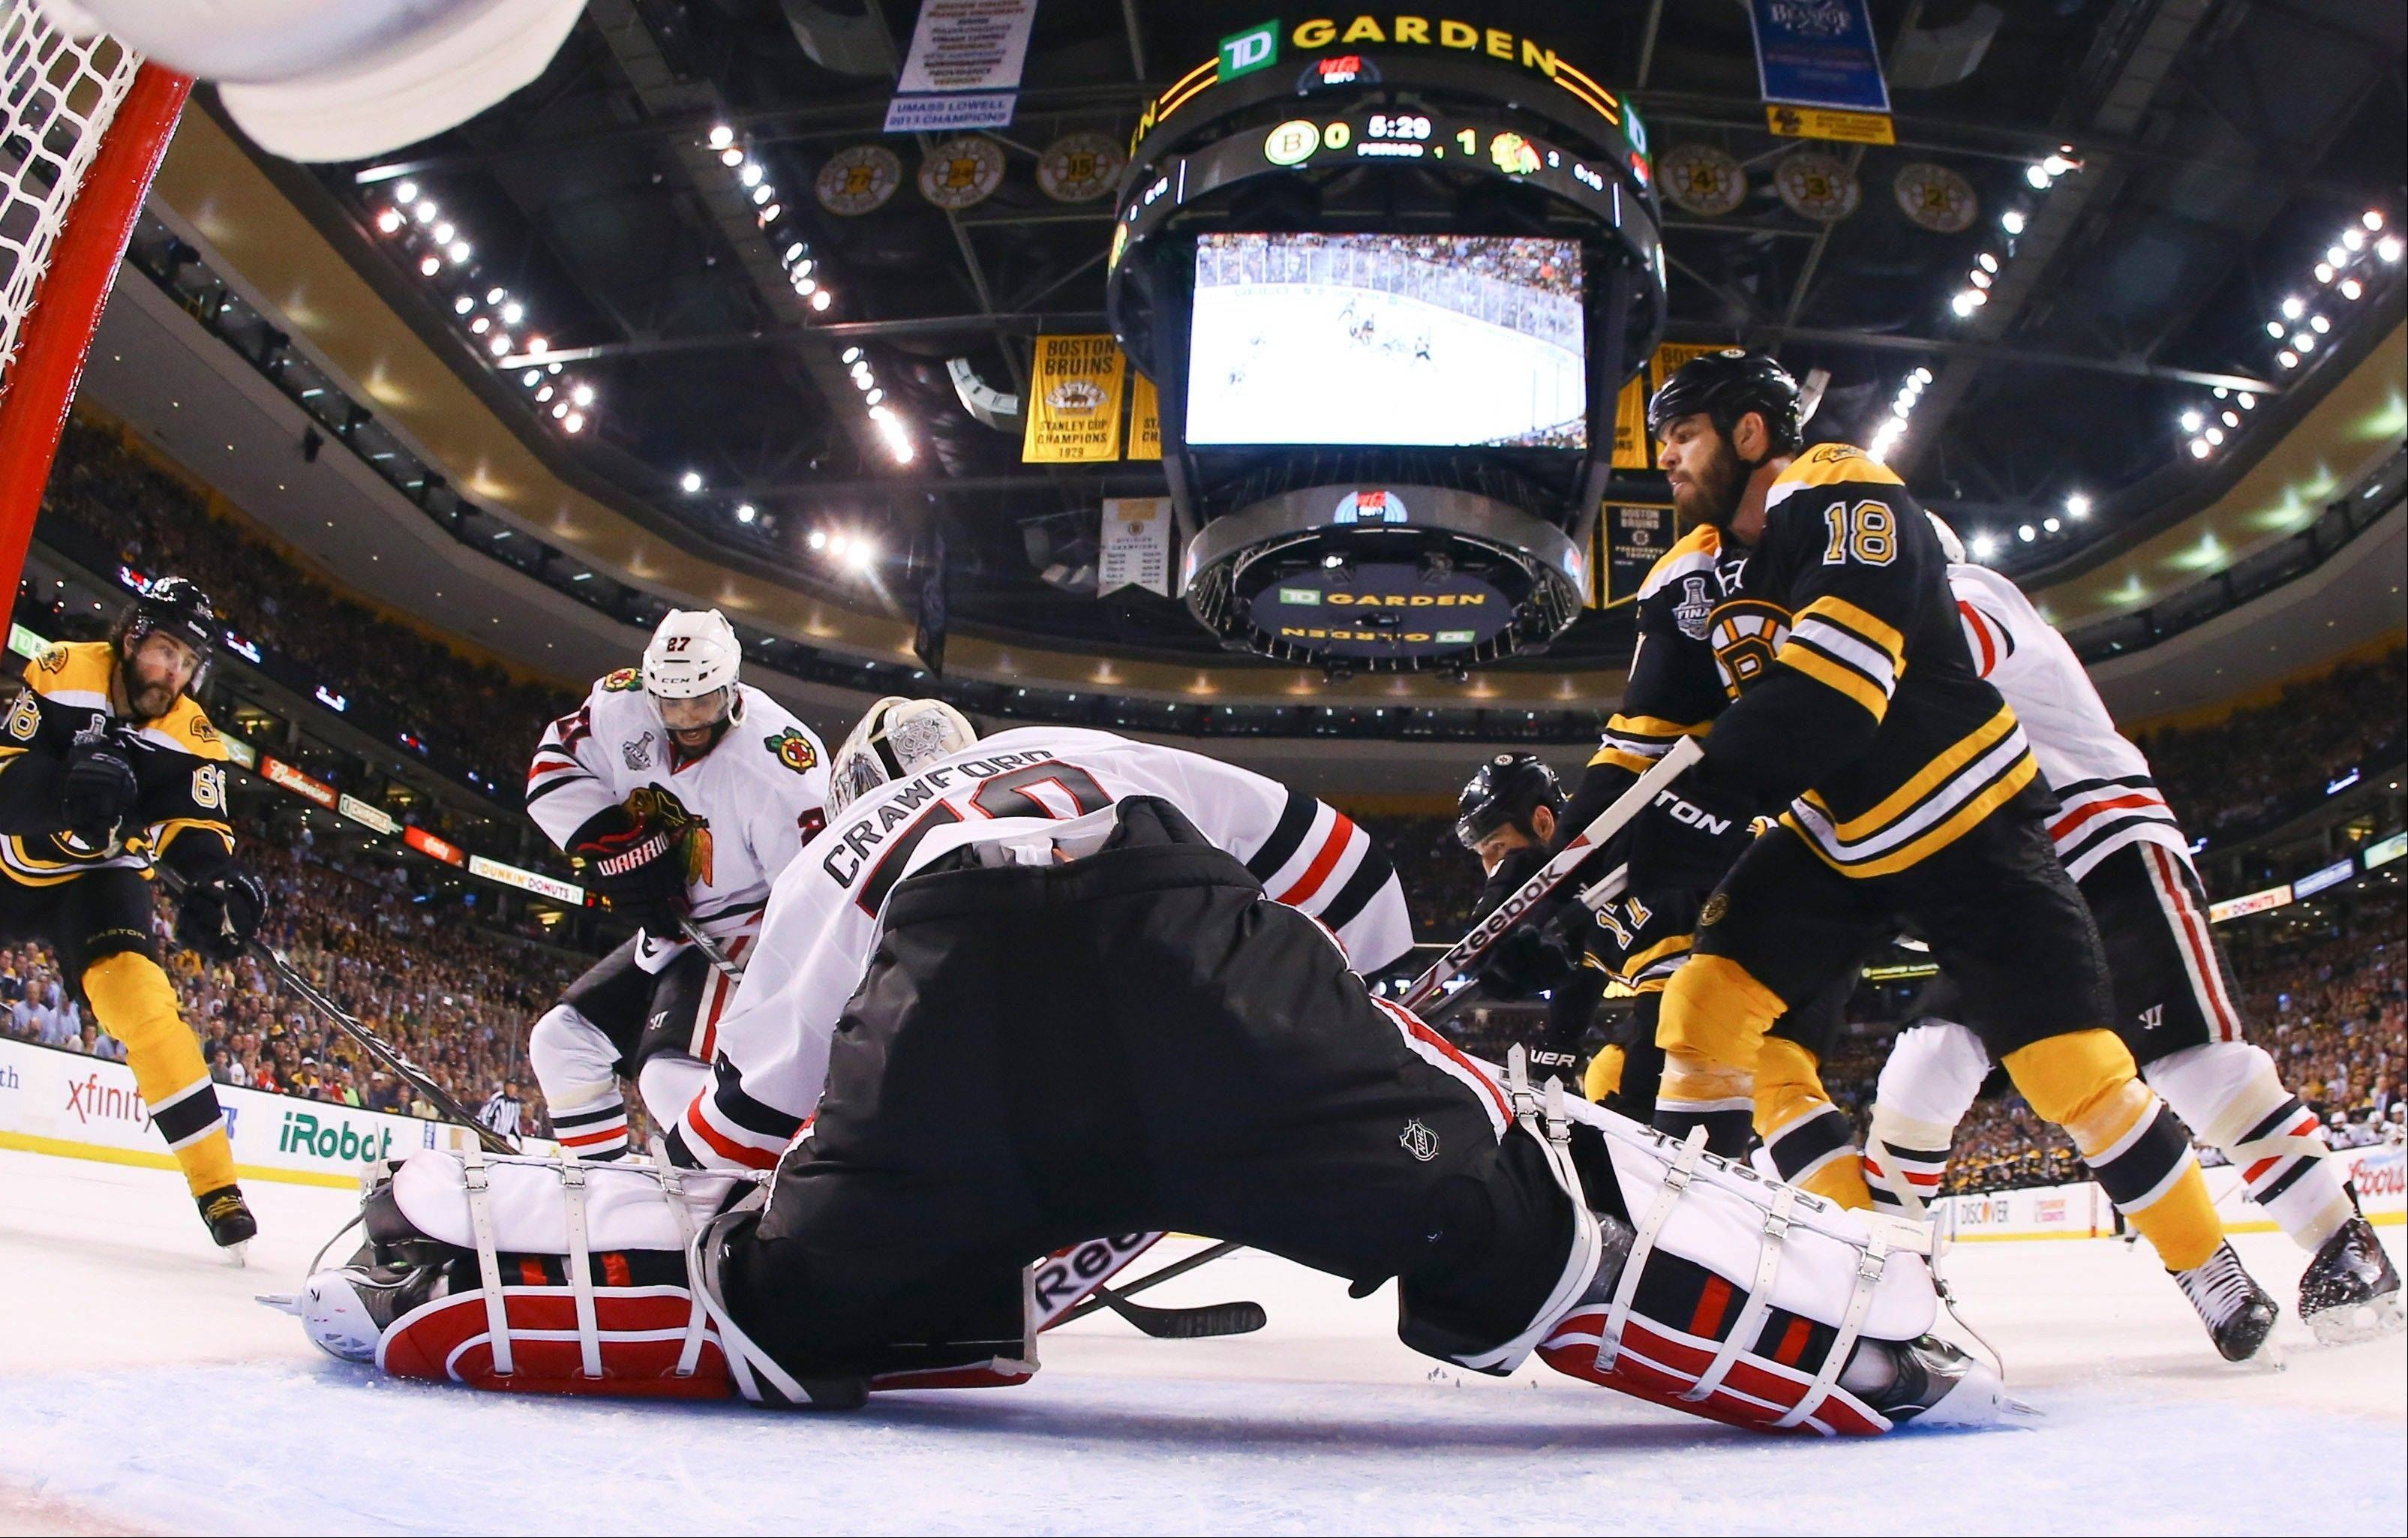 Chicago Blackhawks goalie Corey Crawford (50) defends the net against Boston Bruins right wing Jaromir Jagr (68), of the Czech Republic, and Bruins right wing Nathan Horton (18) during the first period in Game 4 of the NHL hockey Stanley Cup Finals Wednesday, June 19, 2013, in Boston.